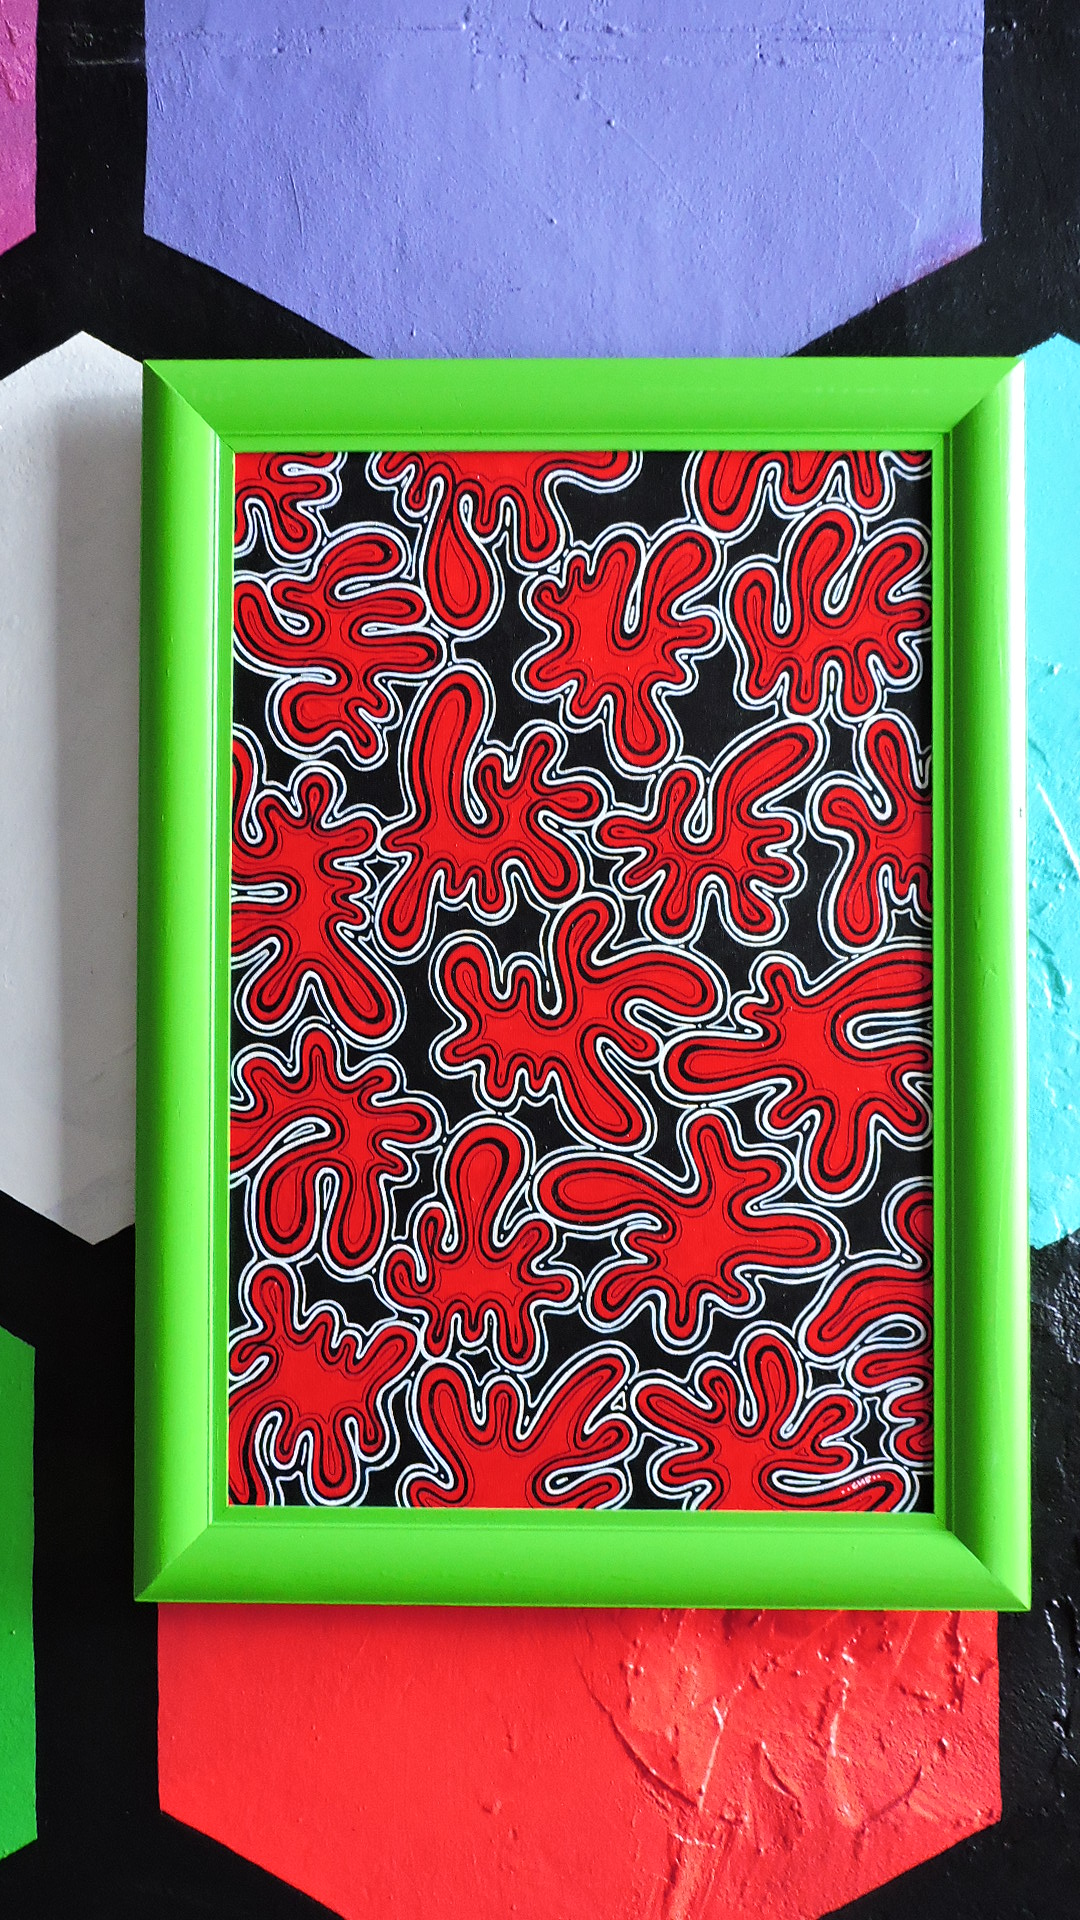 Bright painting in the green frame, the artist has depicted about how does poison the newcomer